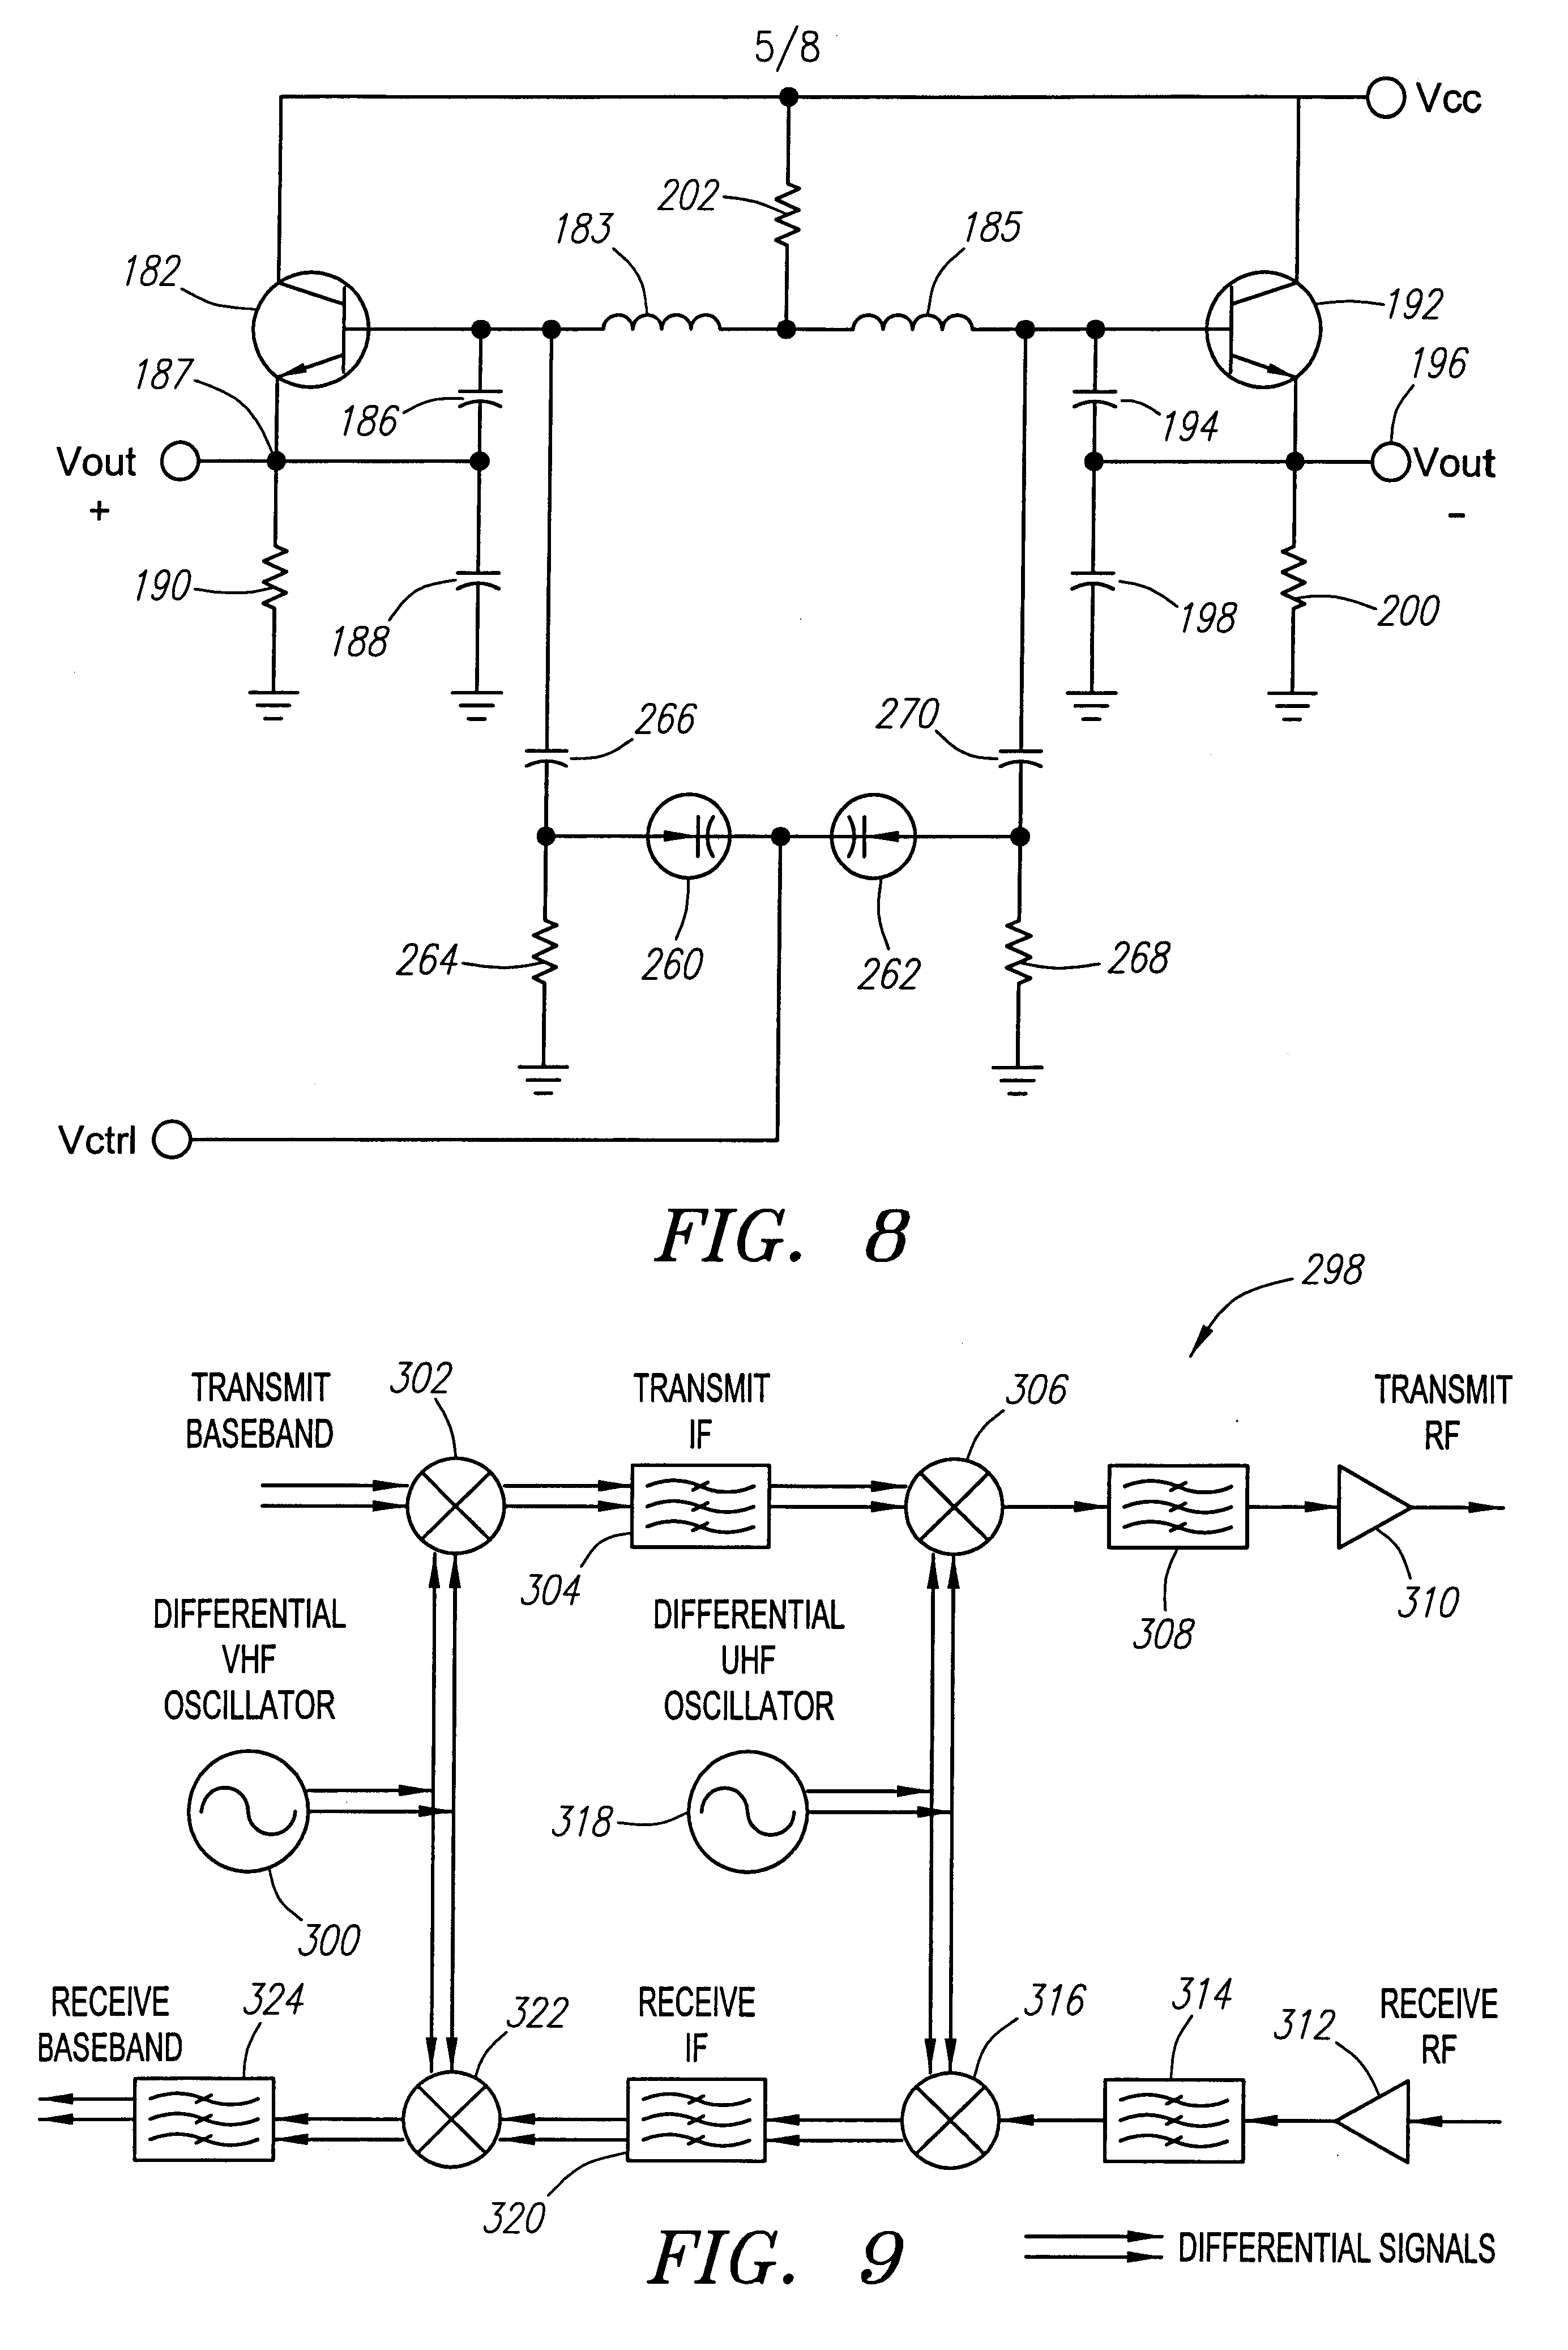 Patent Us6249190 Differential Oscillator Google Patents The Colpitts Utilizes A Tank Circuit Lc In Feedback Drawing